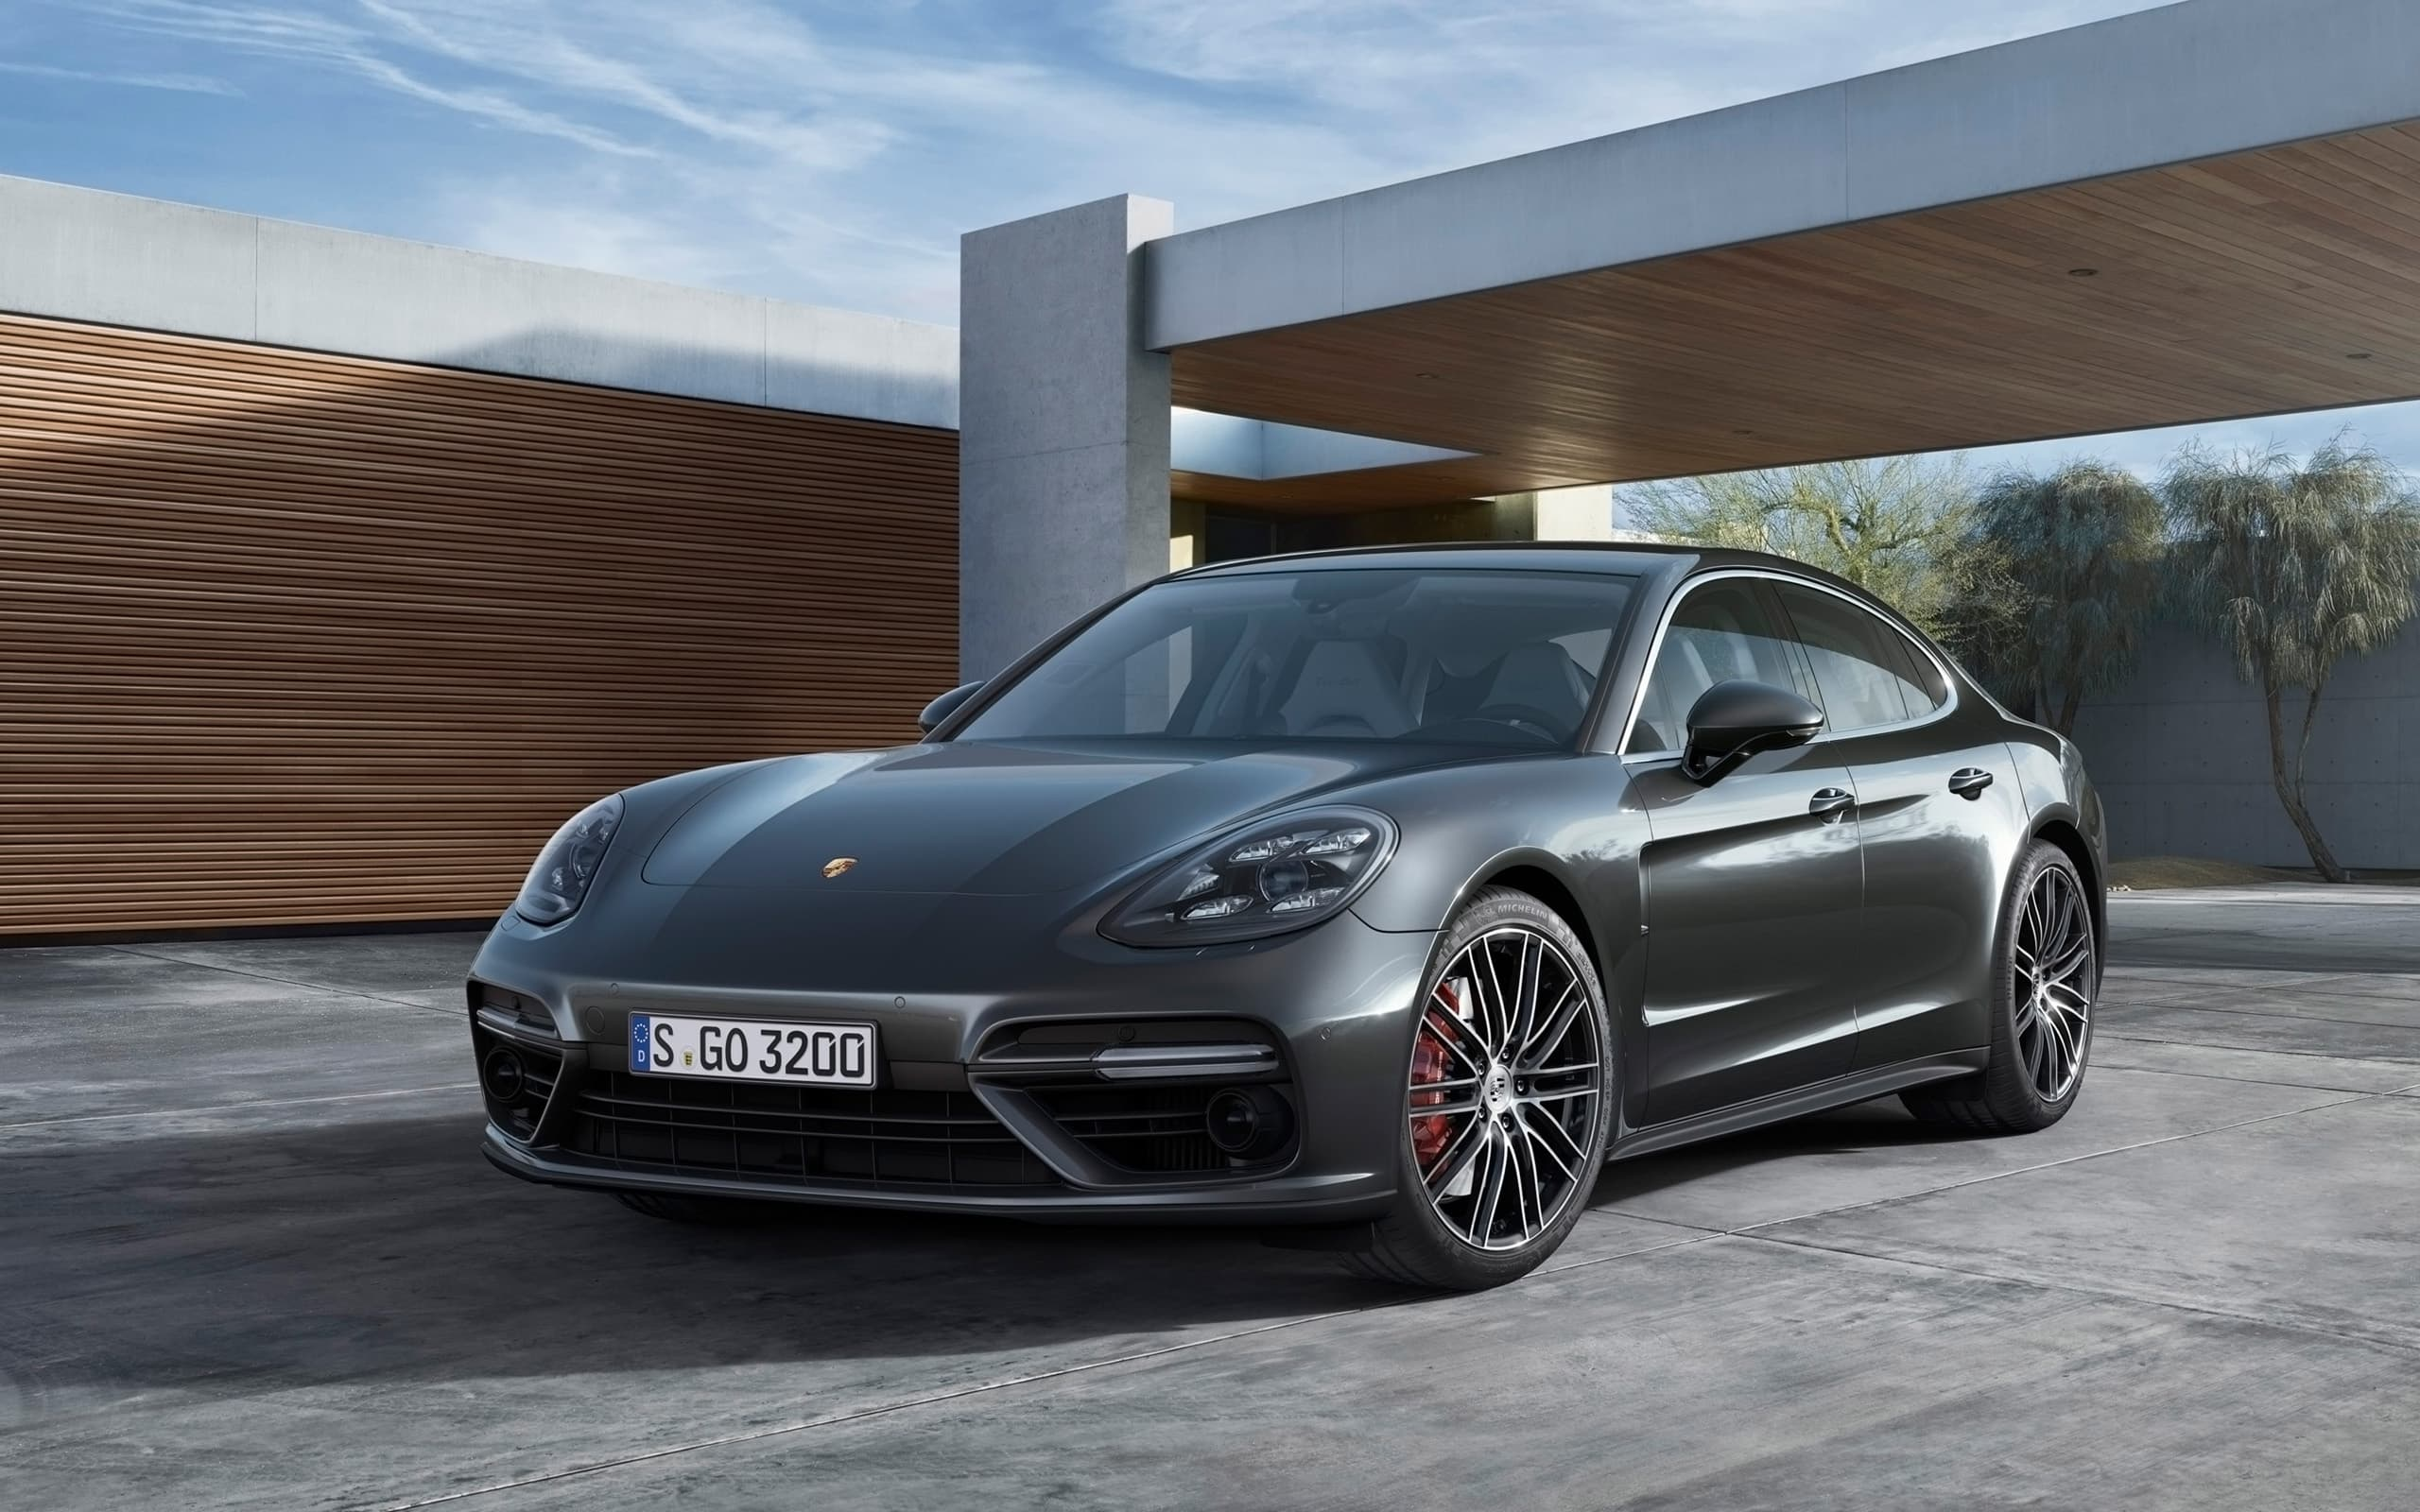 Porsche Panamera Turbo S 2017 wallpapers HD, White, Black, Red